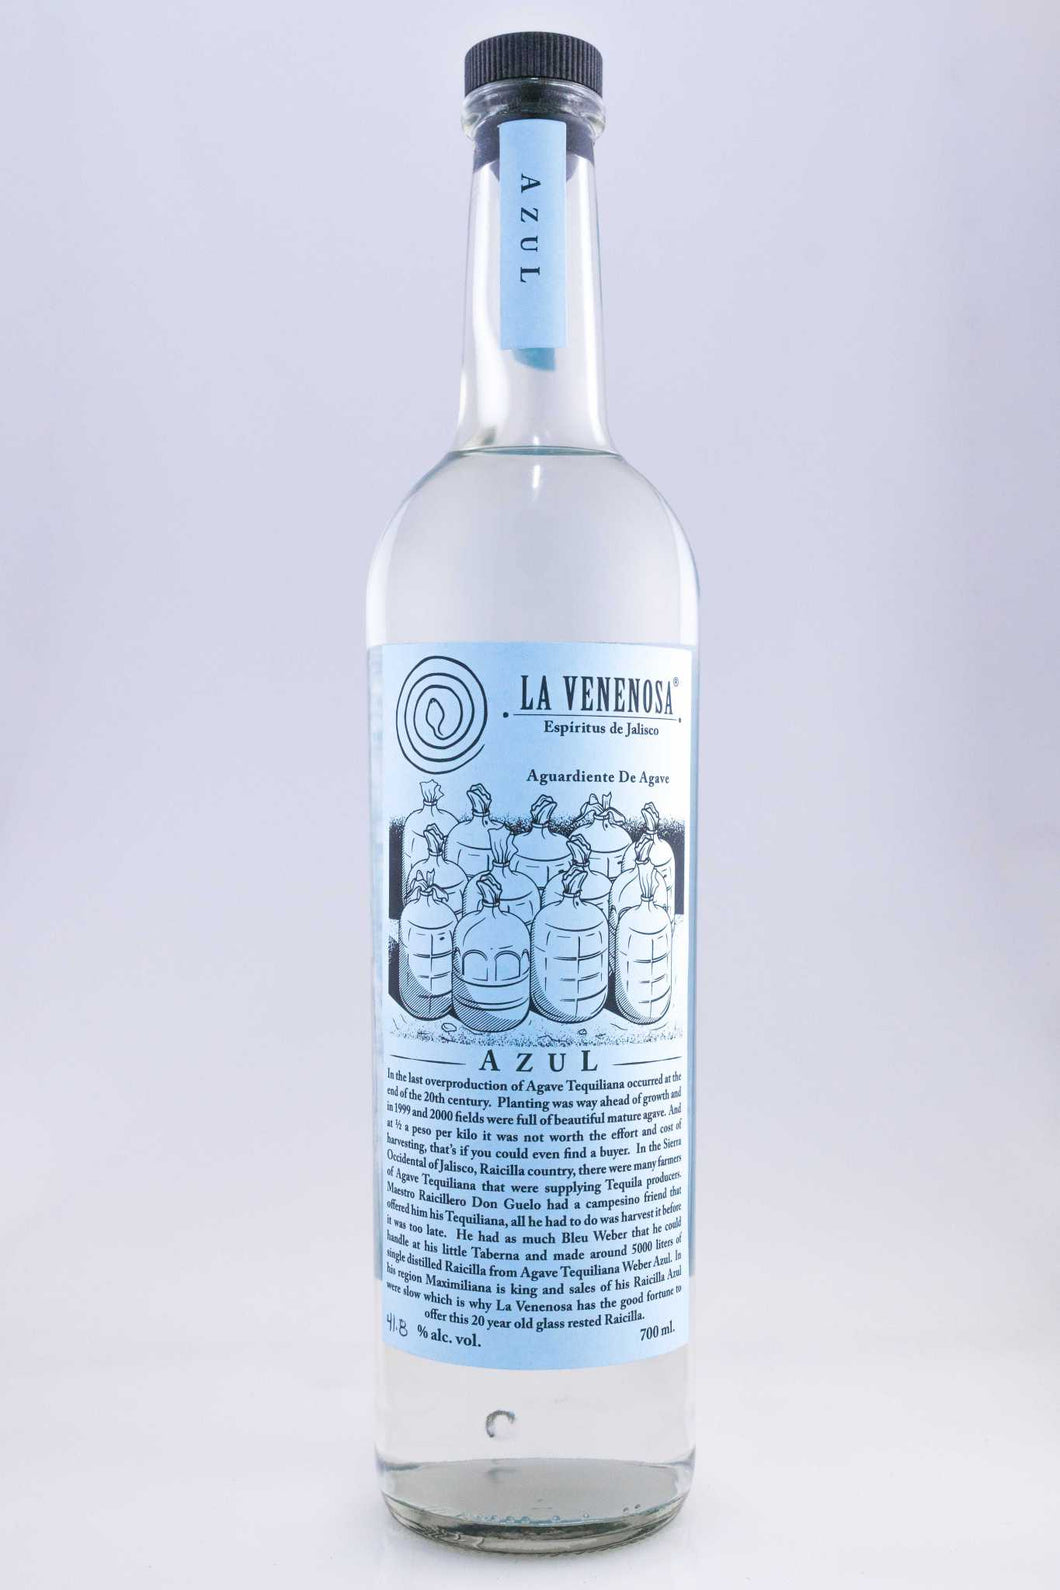 La Venenosa Azul unique batch